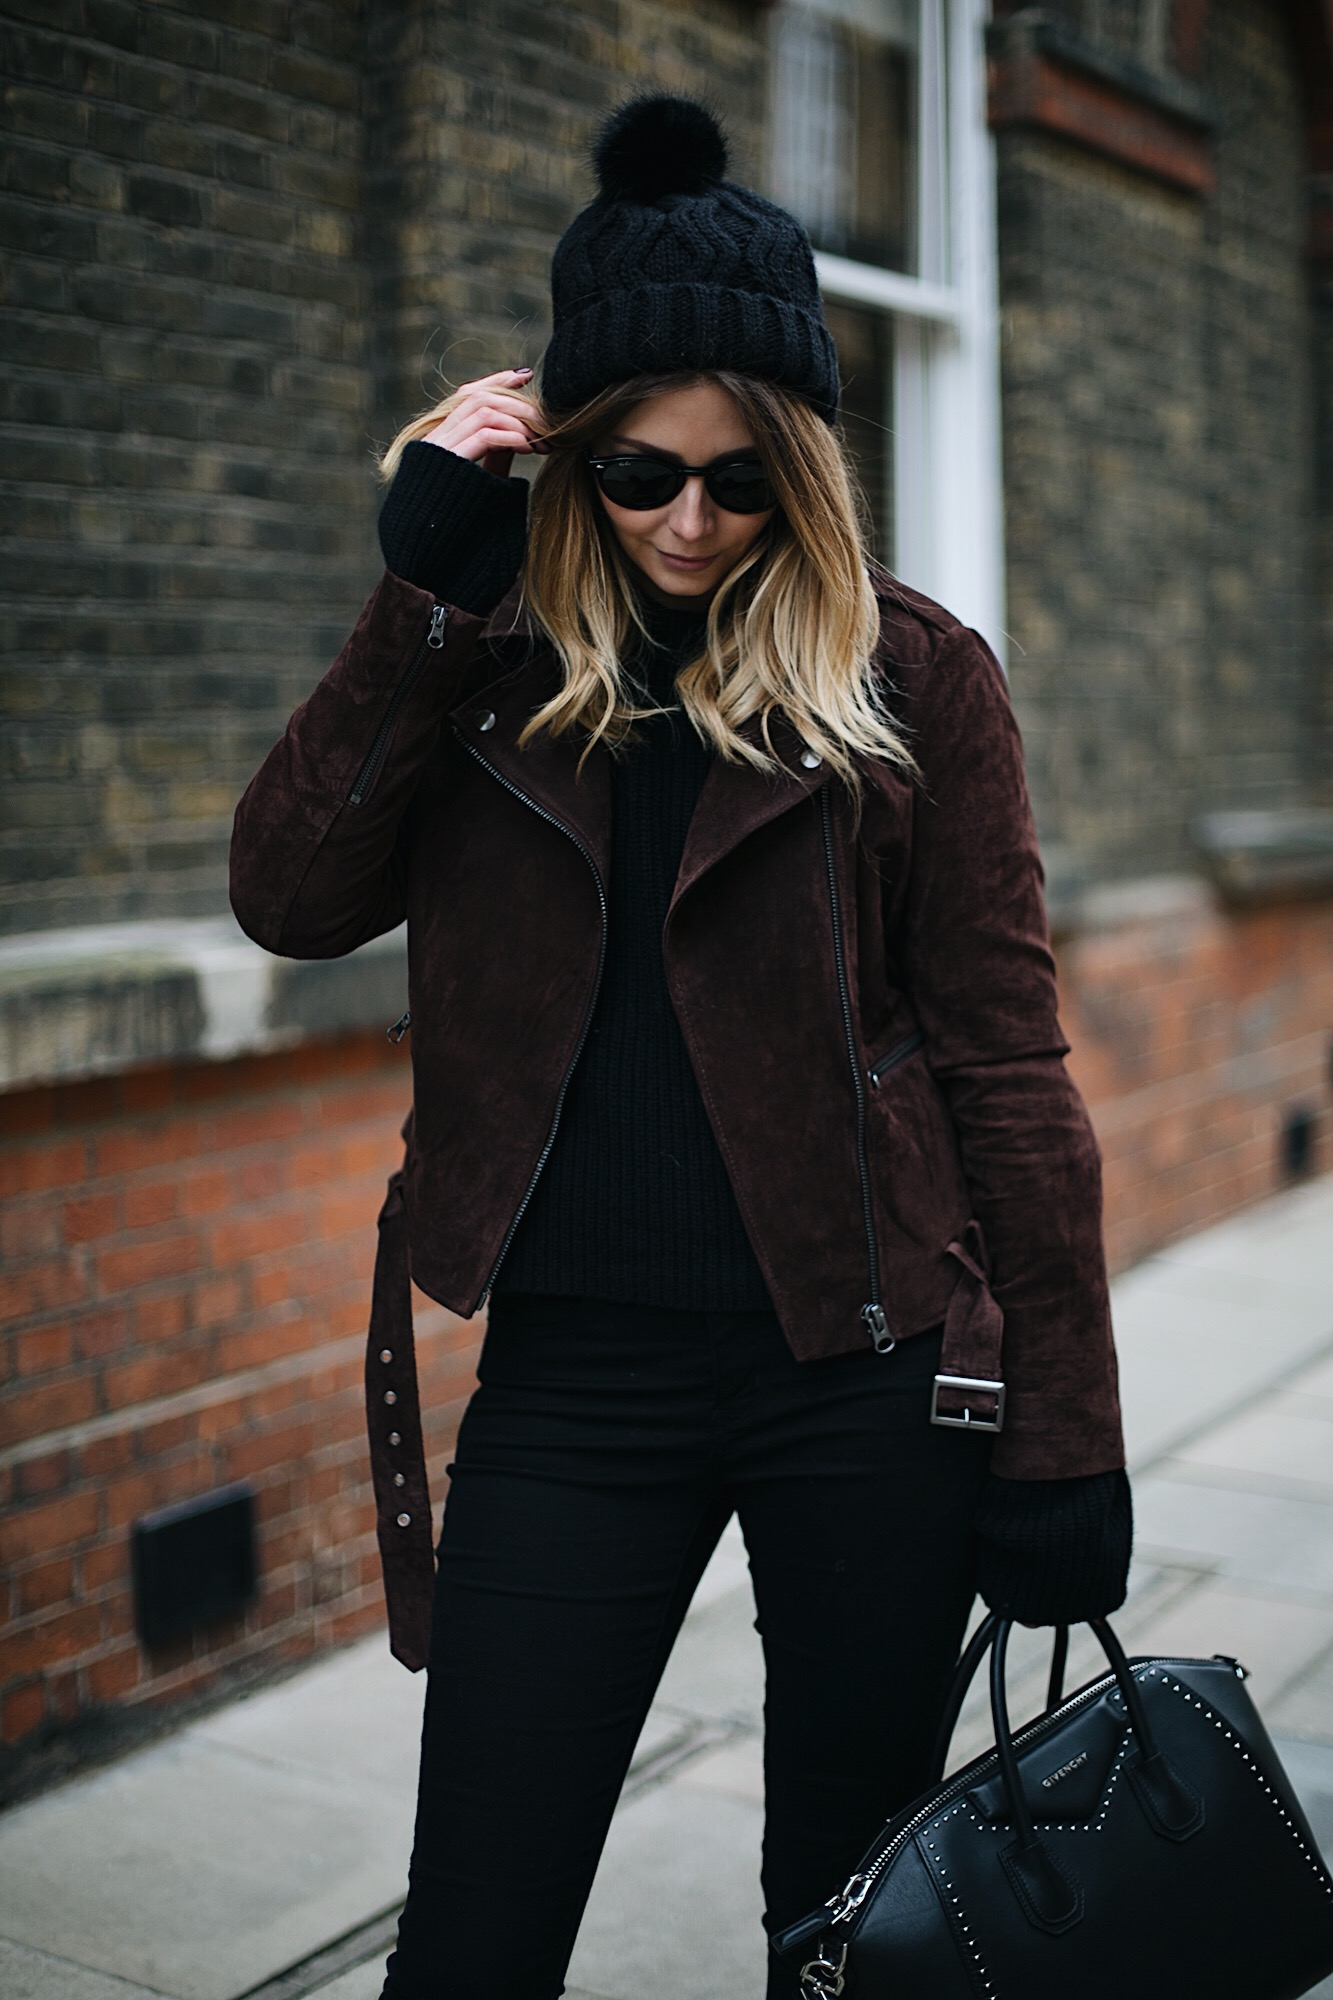 brown suede jacket, black sweater, black knitted hat, skinny jeans, winter outfit